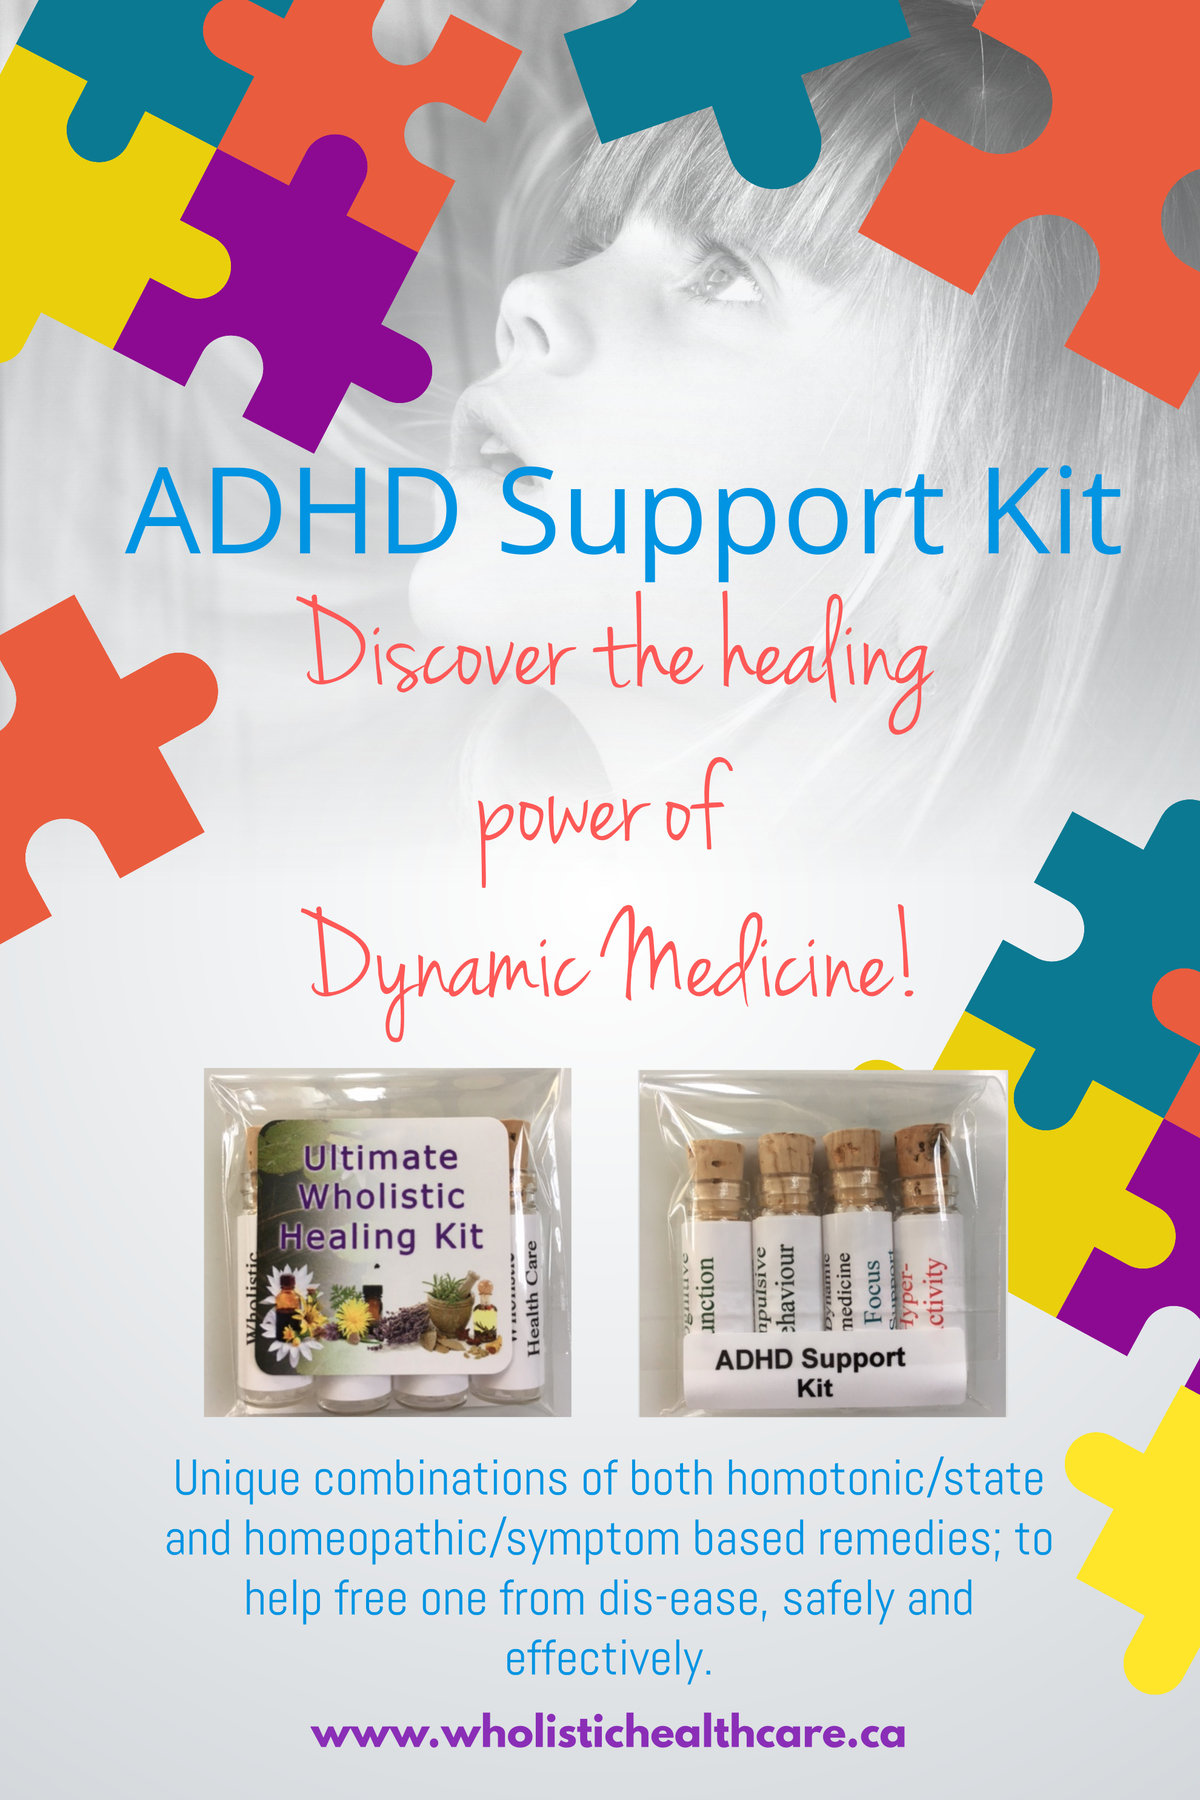 ADHD Homeopathic Support Kit 00007